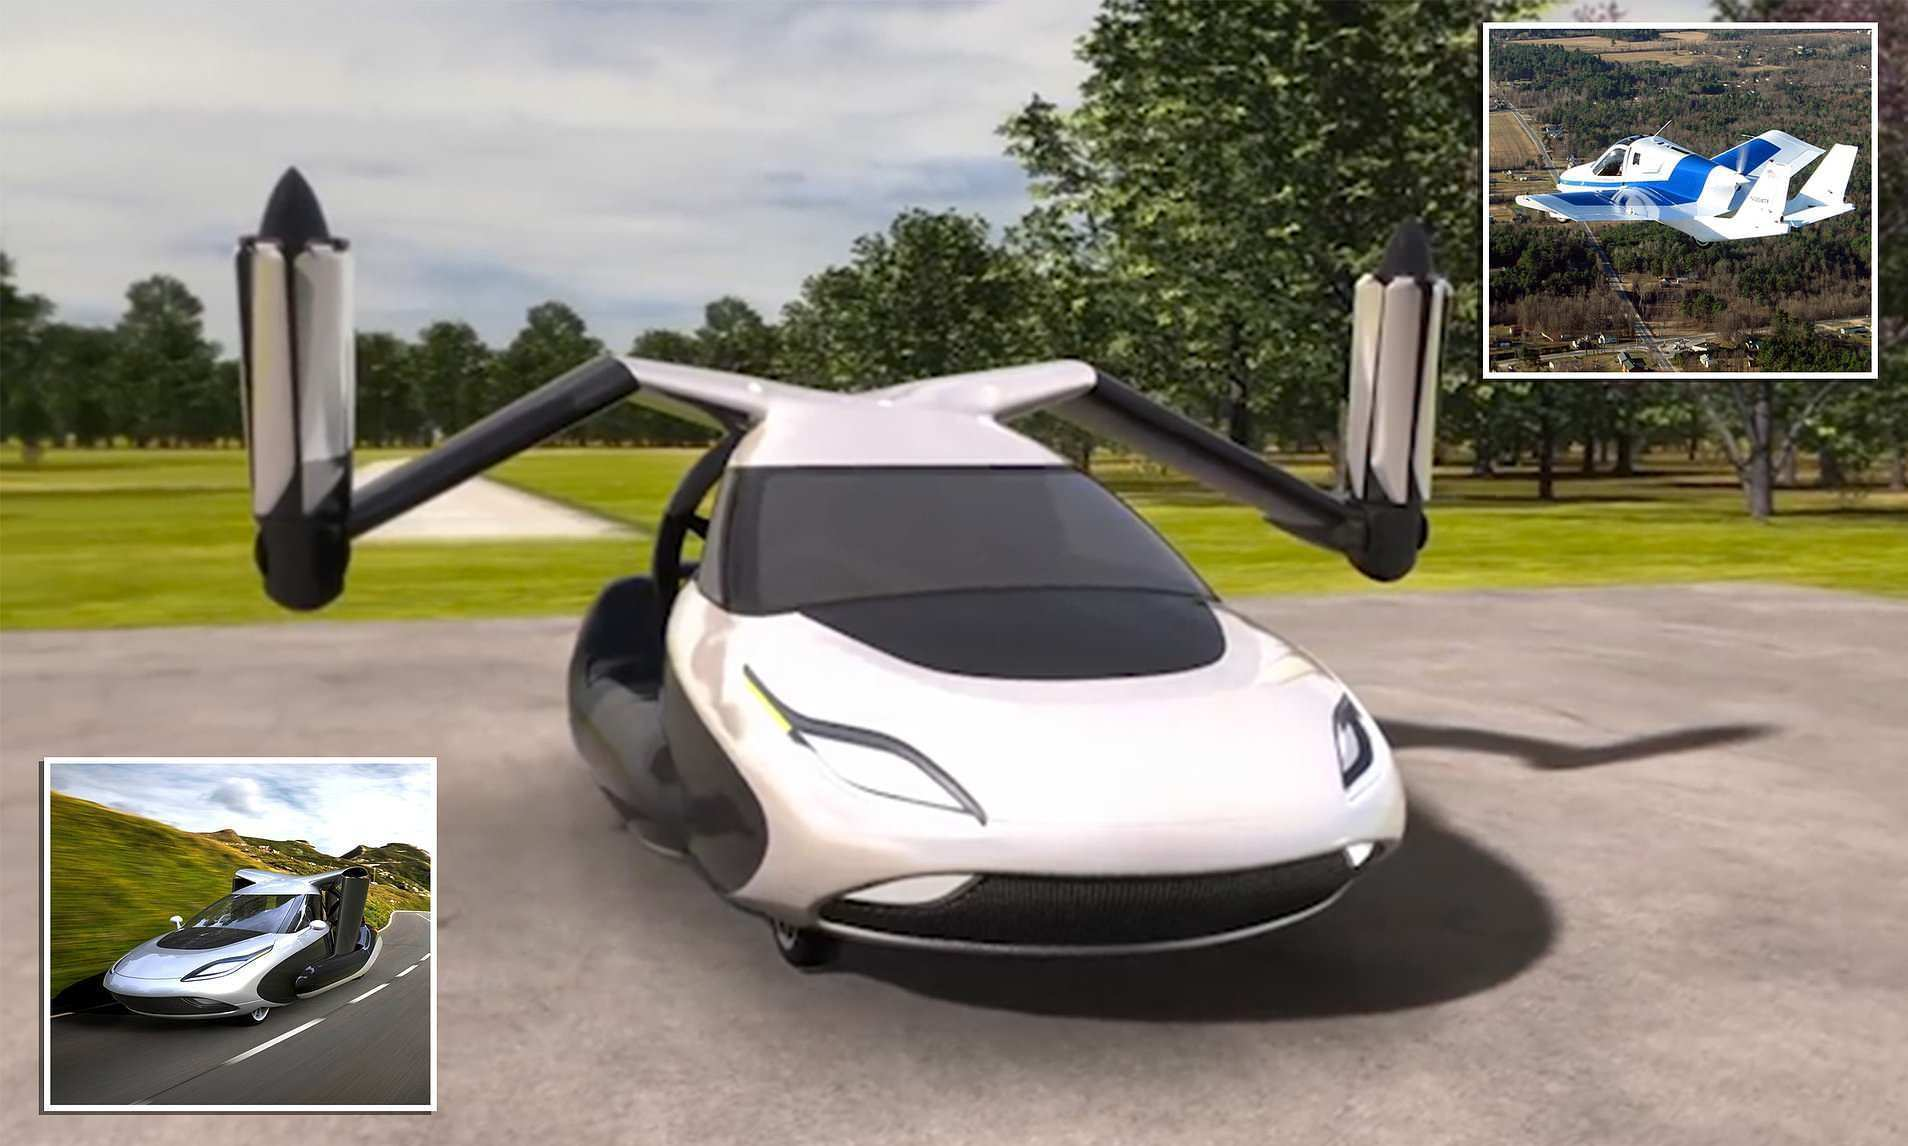 92 New The Volvo Flying Car 2019 Engine Spy Shoot for The Volvo Flying Car 2019 Engine